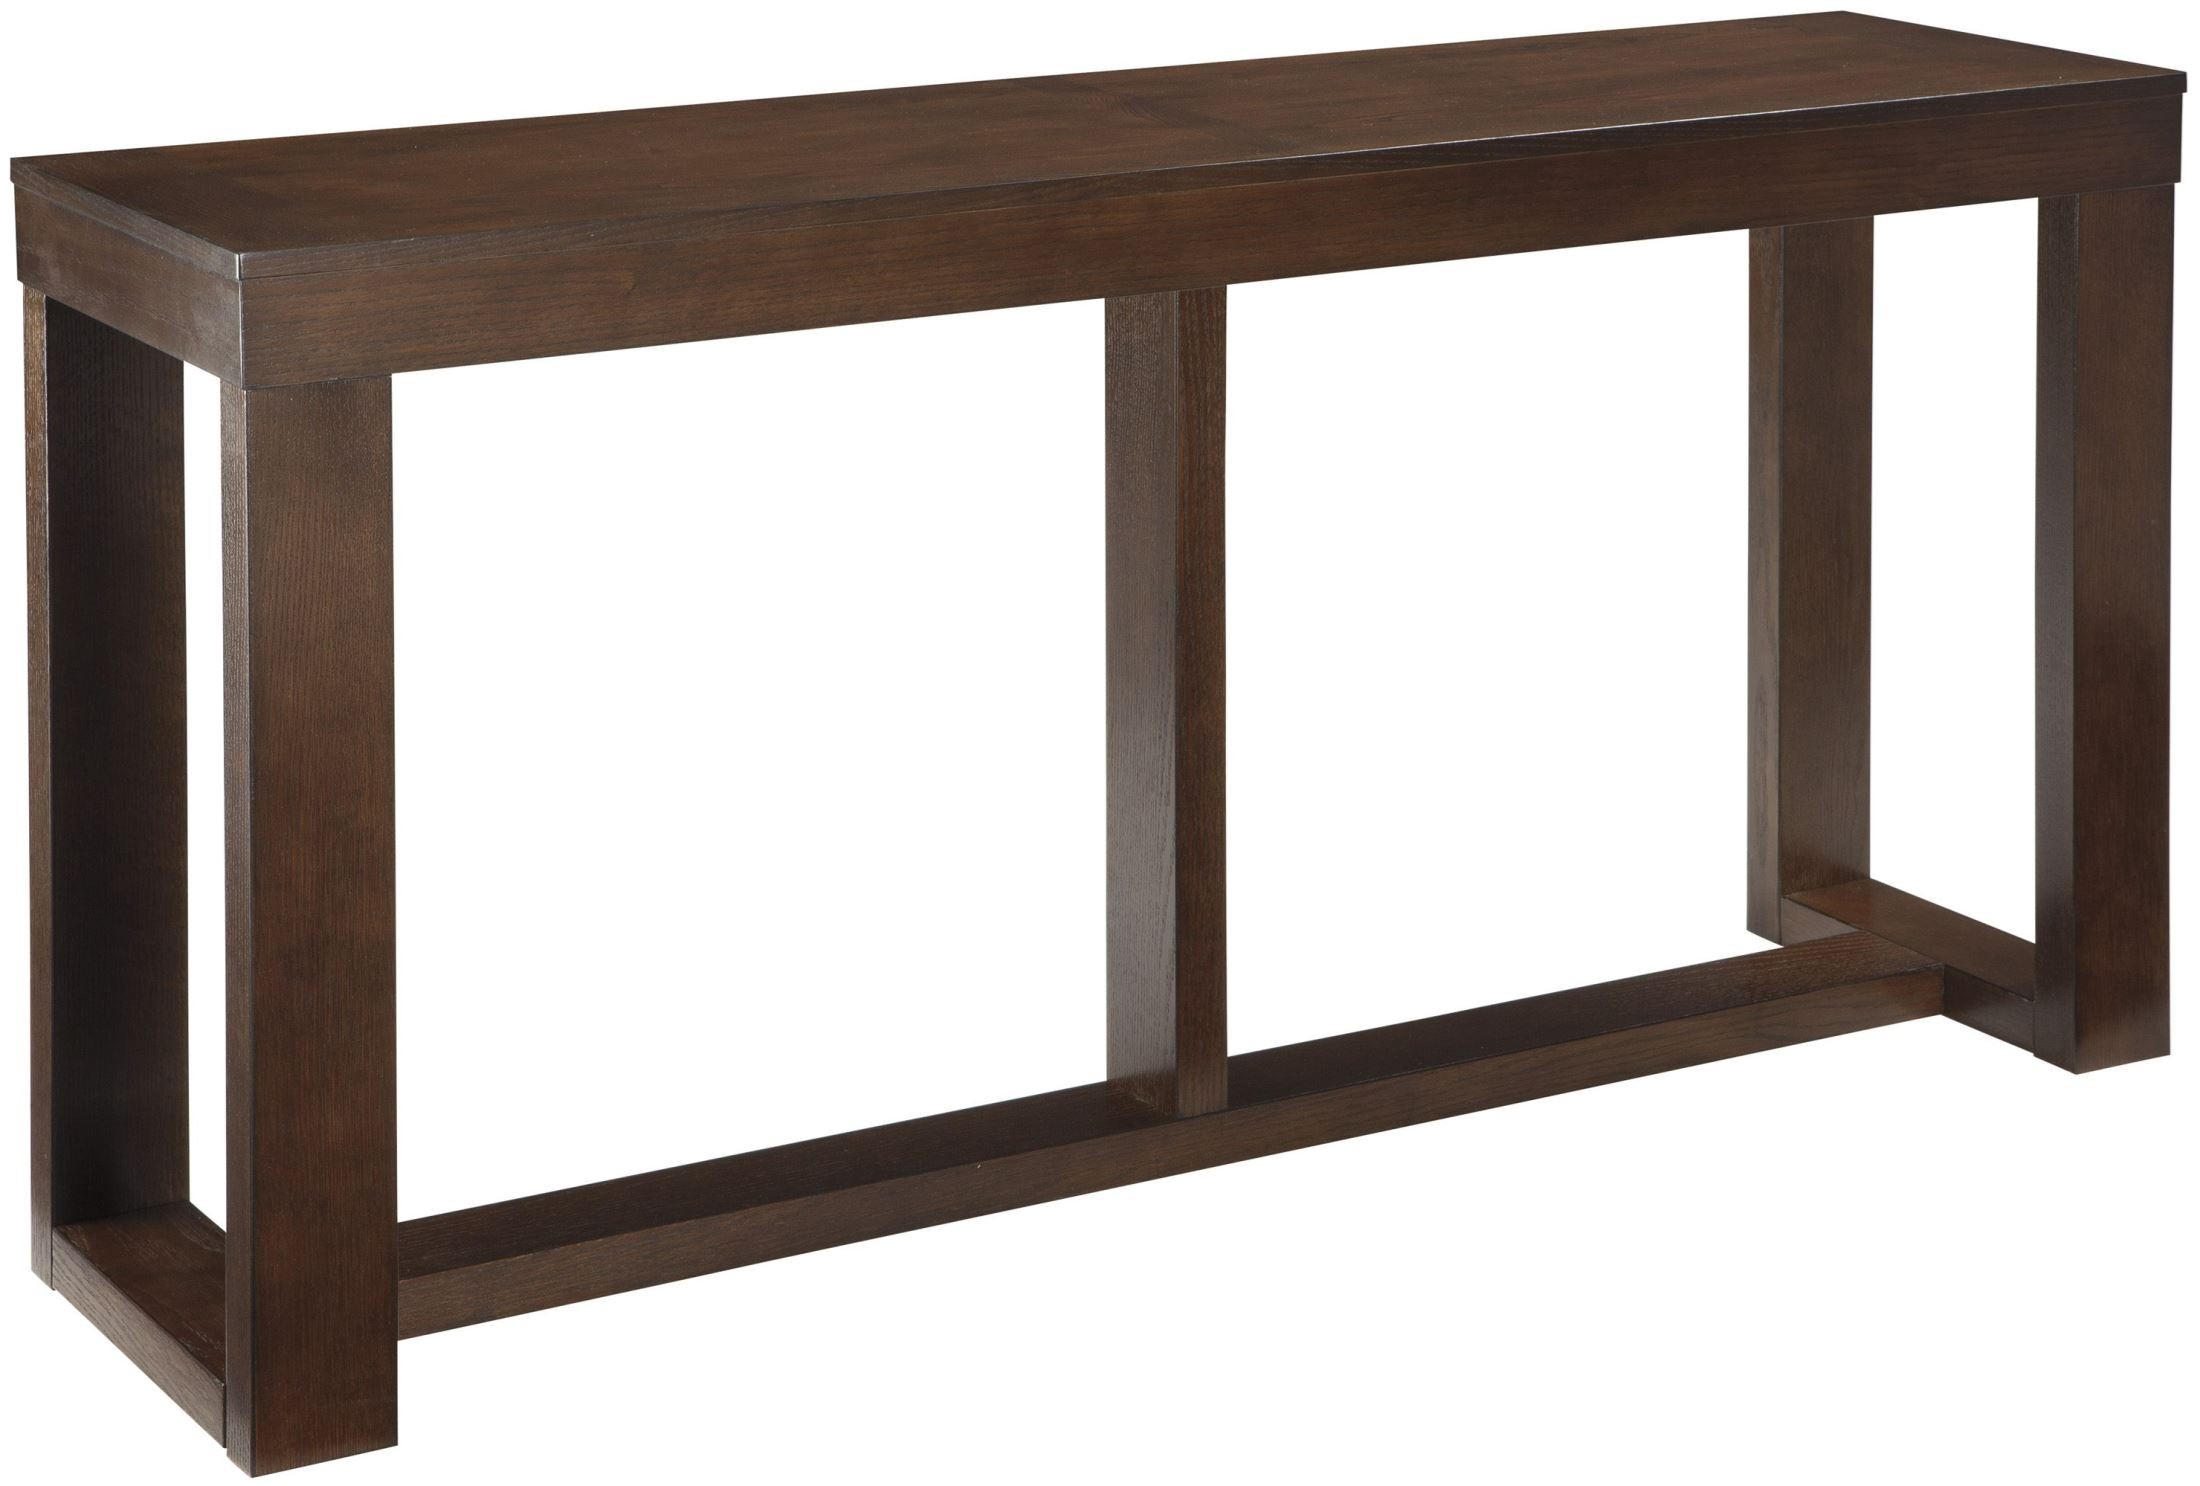 Watson sofa table from ashley t481 4 coleman furniture for 5 sofa table